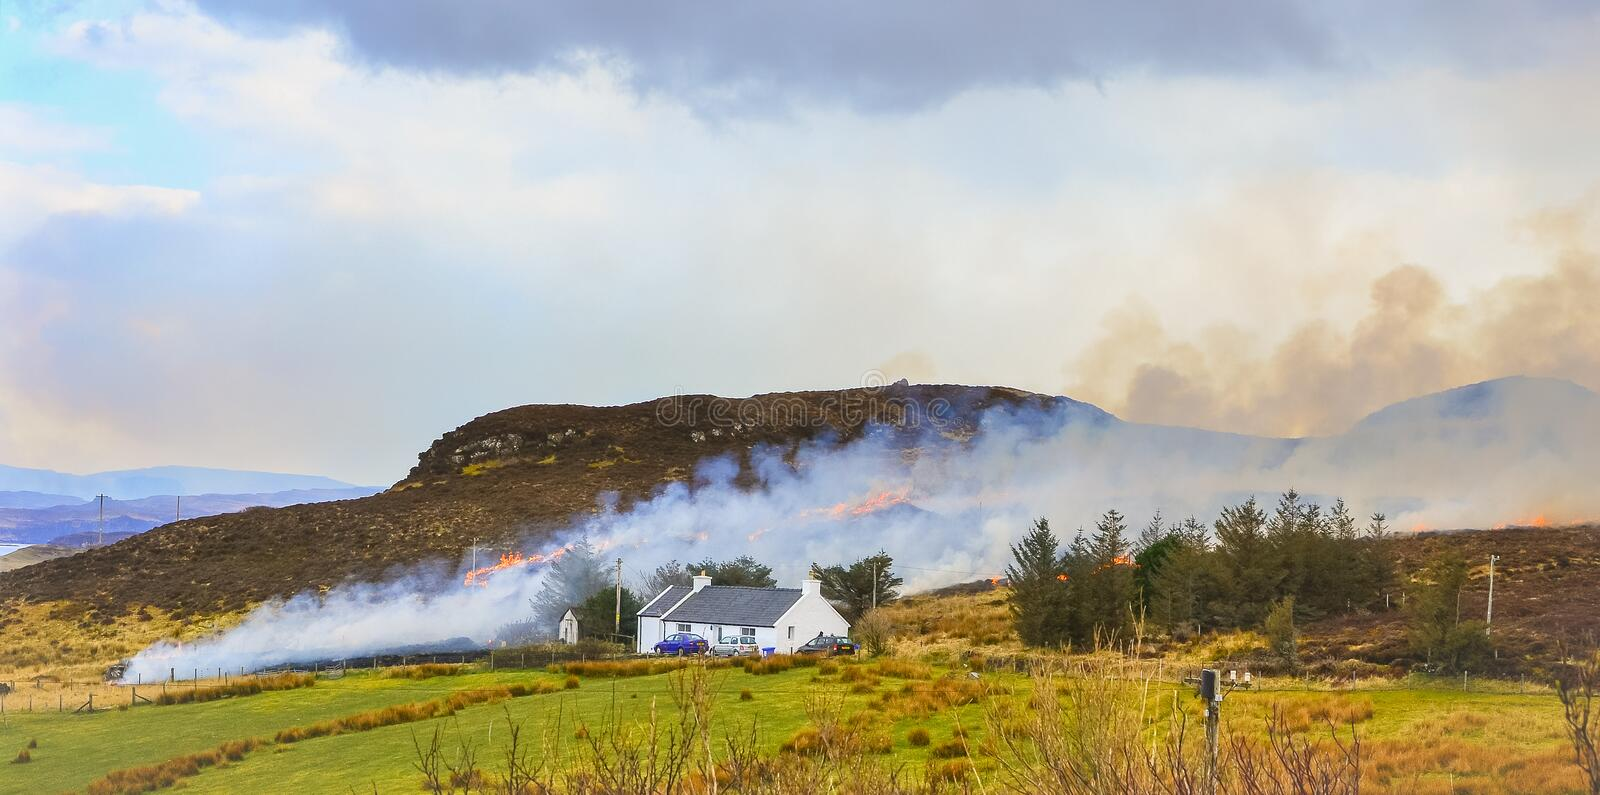 Dunvegan/Scotland, March 2014: Fire brigade trying to control a dry grass and reeds fire near residential buildings stock photography